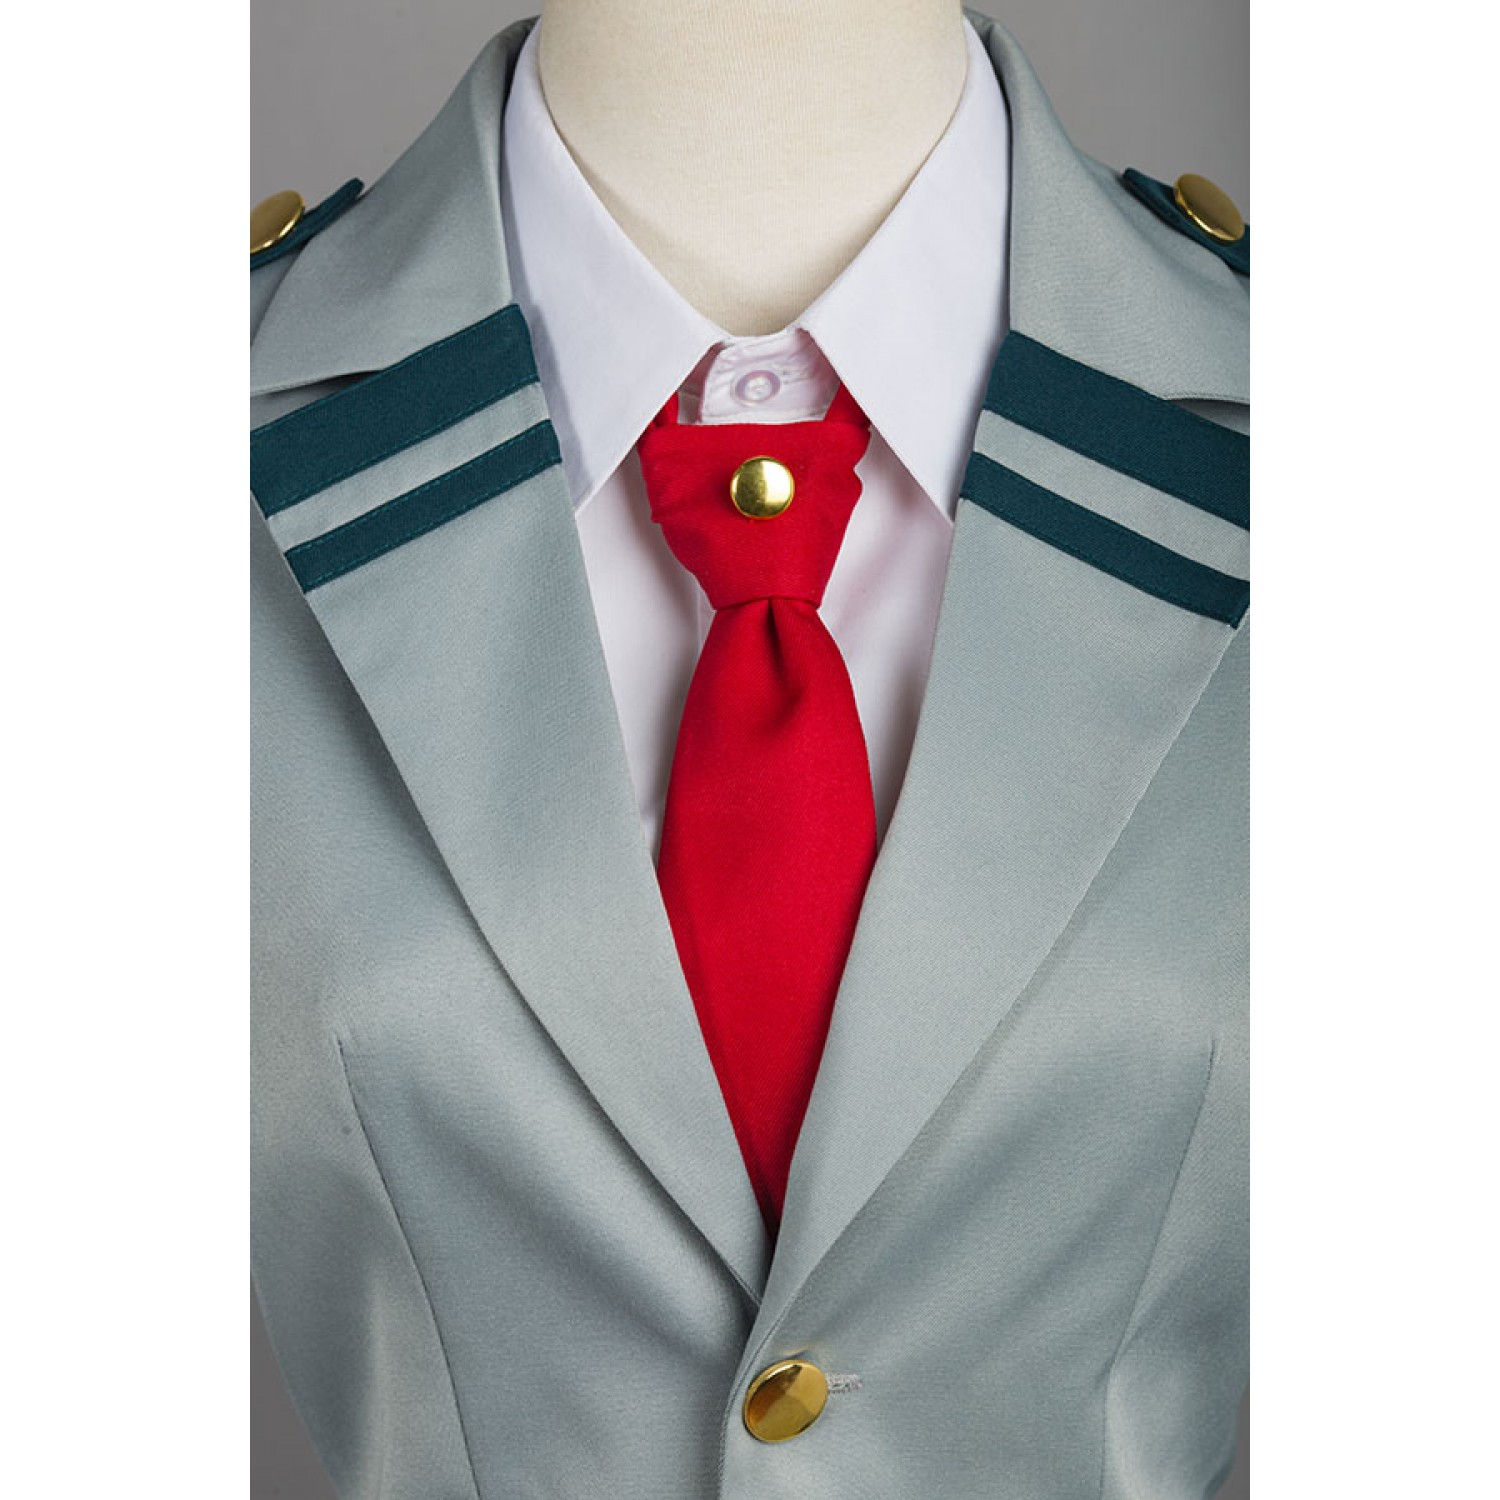 Boku No Hero Academia My Hero Academia Tsuyu School Uniform Cosplay Costume